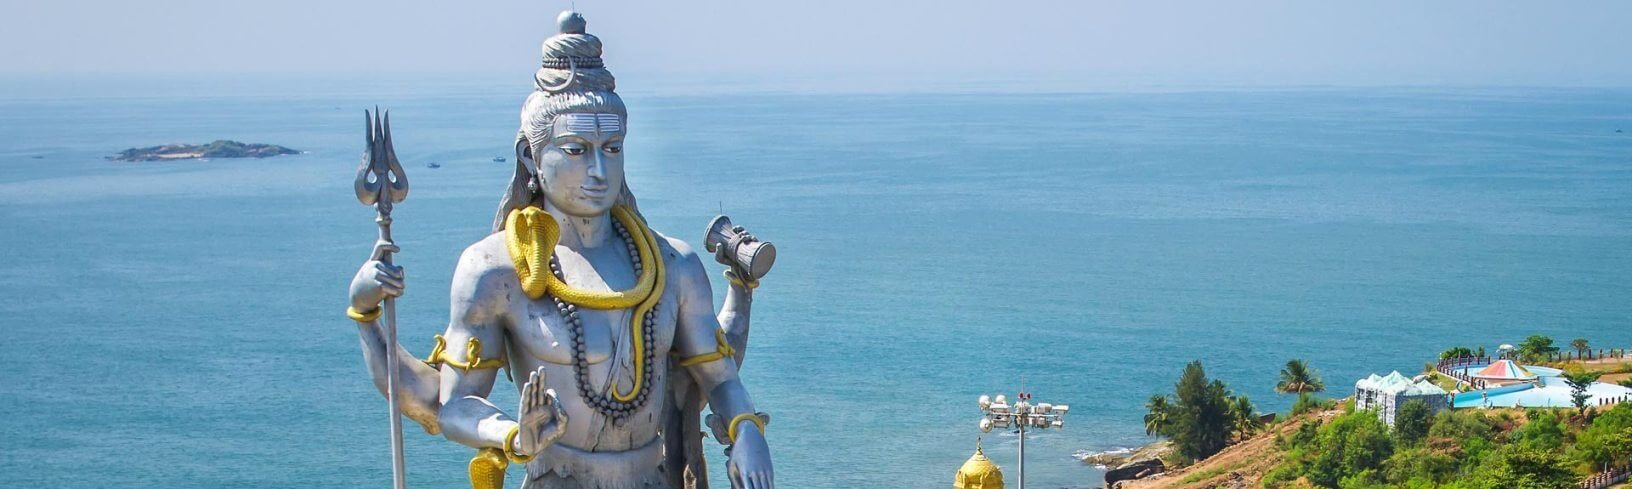 Murudeshwar & Gokarna tour package - Tour